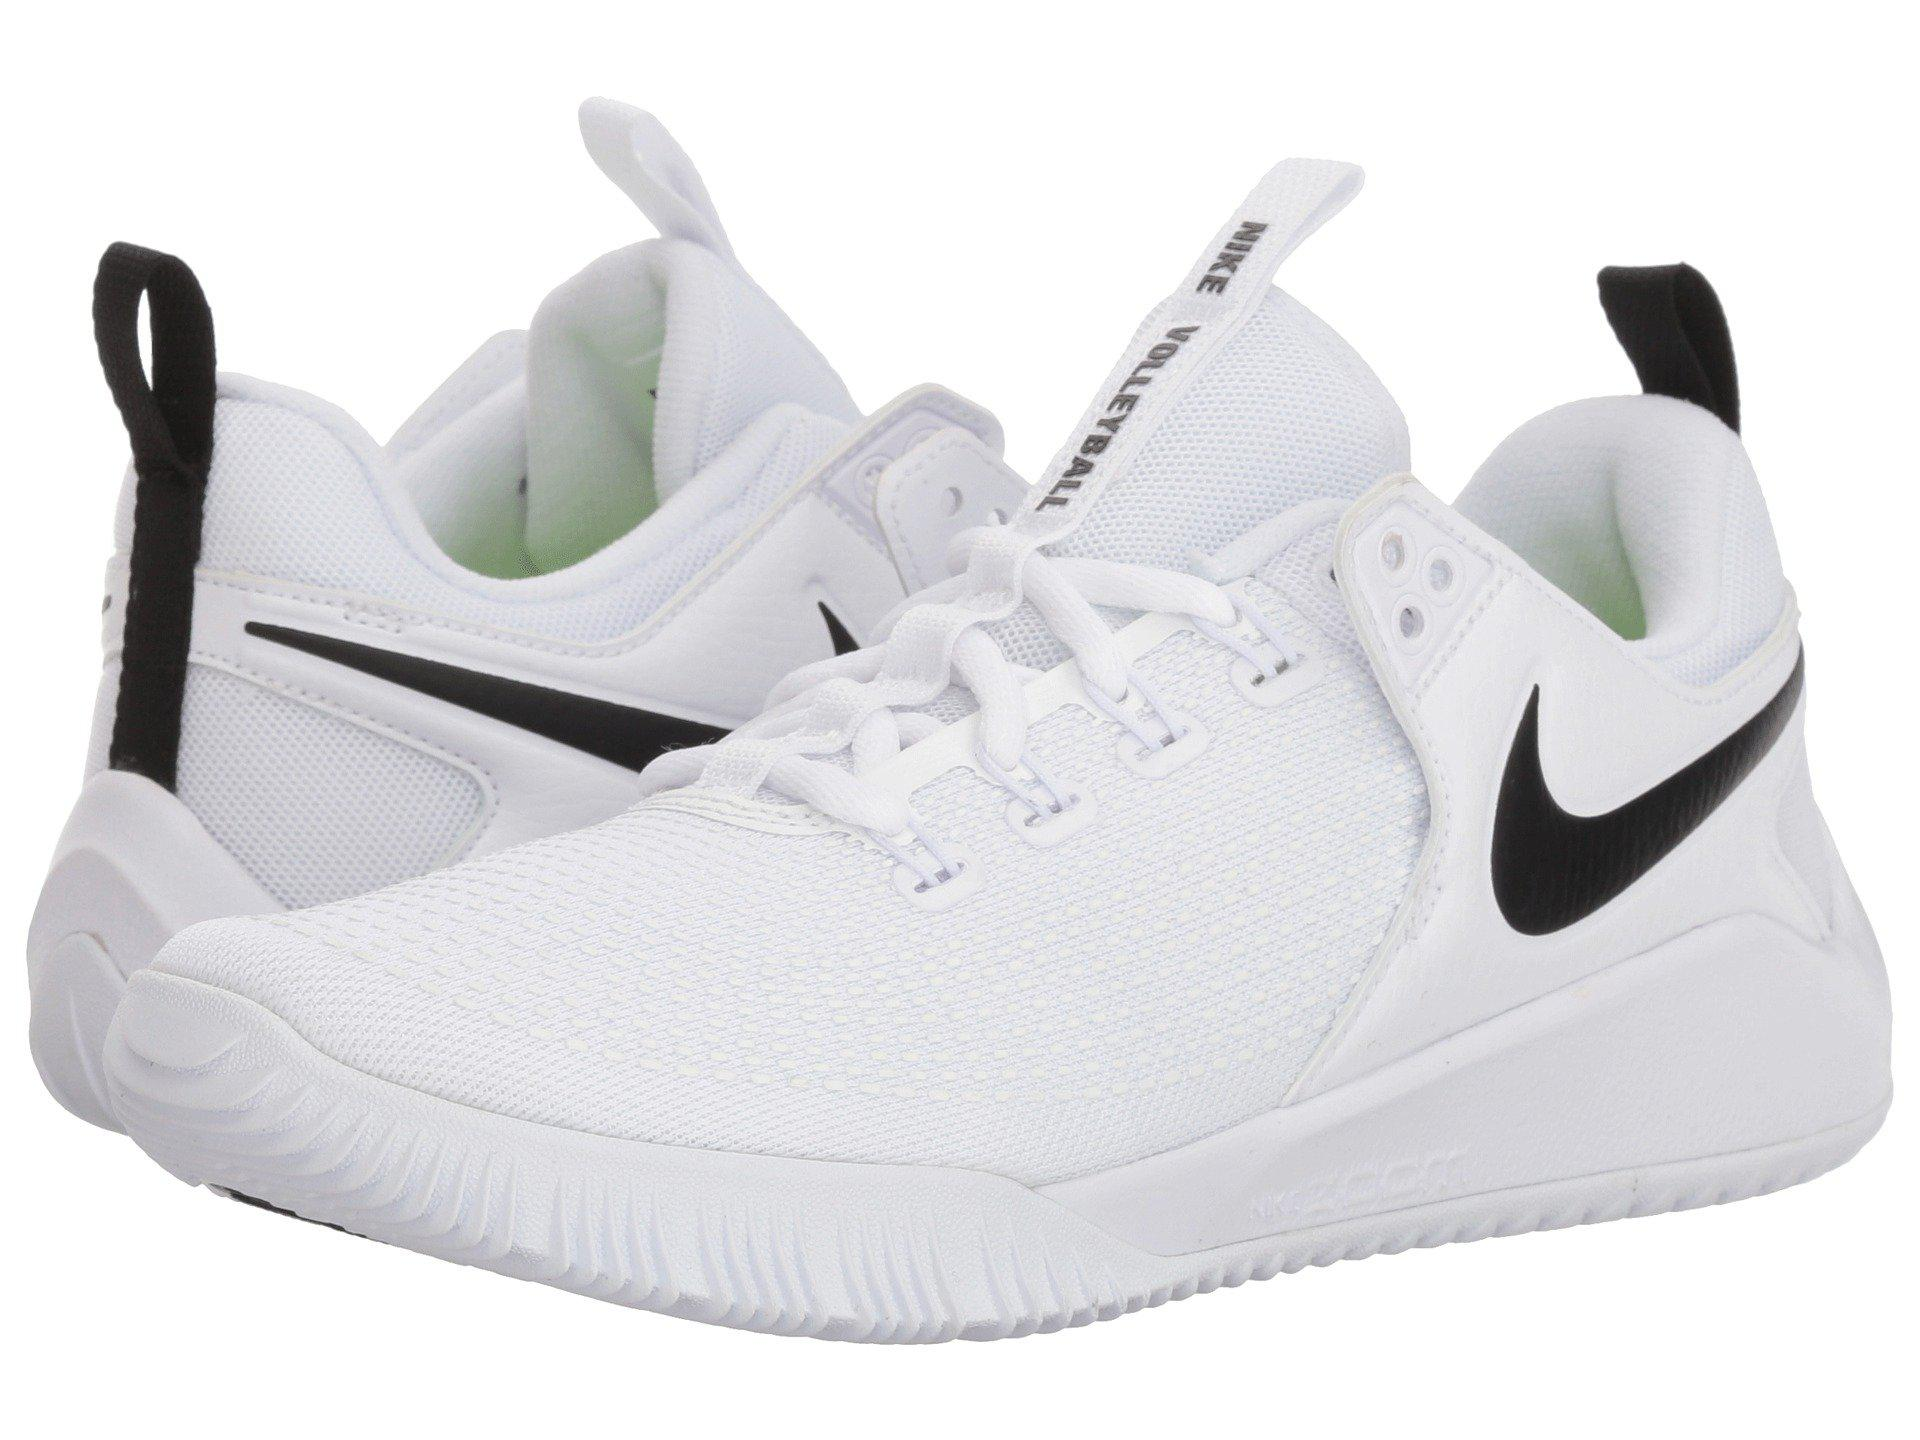 reputable site 0b6a4 2c8ad nike-WhiteBlack-Zoom-Hyperace-2-whiteuniversity-Red-Womens -Cross-Training-Shoes.jpeg